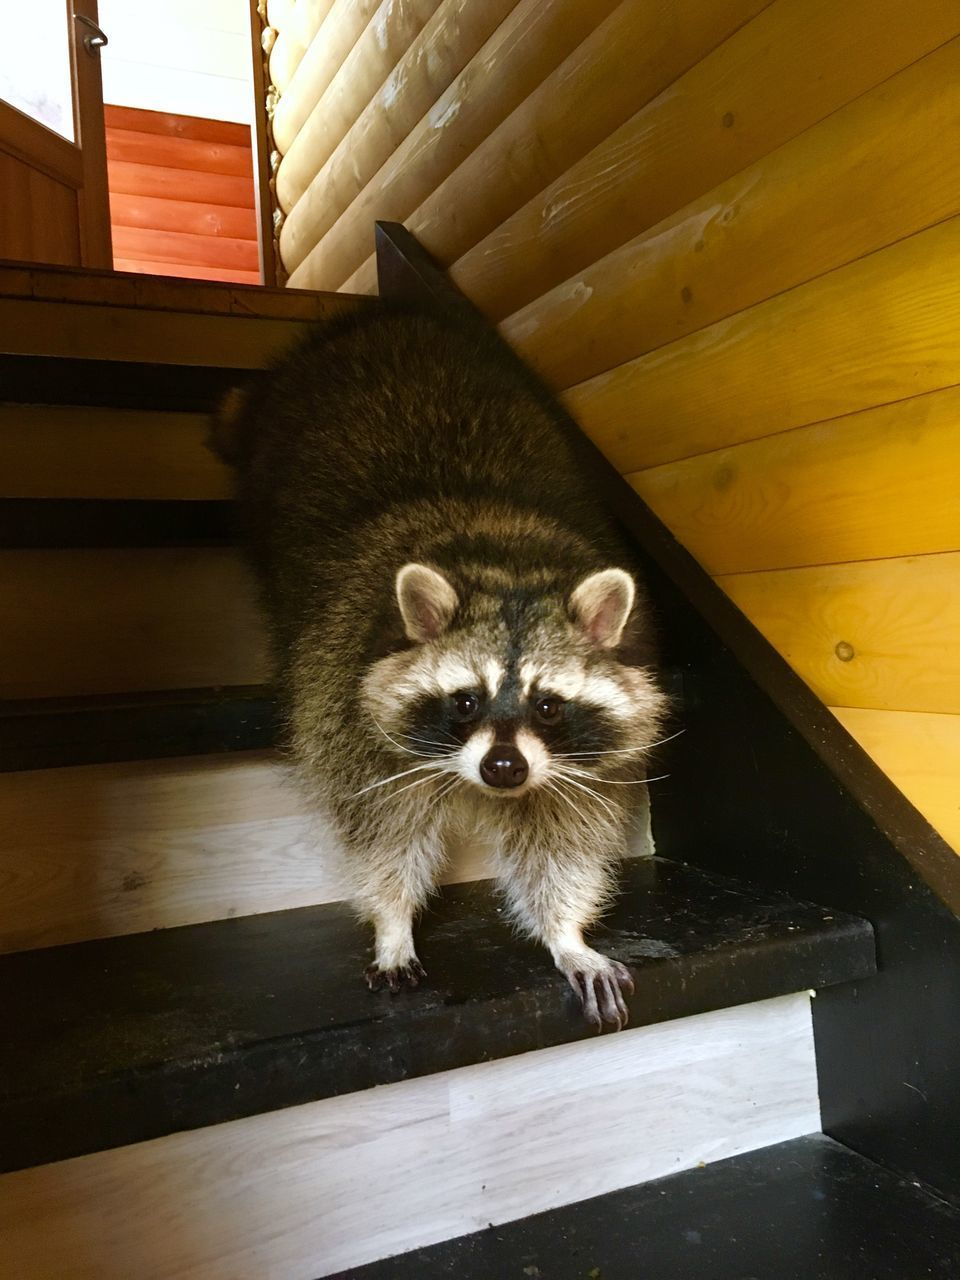 mammal, one animal, looking at camera, portrait, no people, vertebrate, wood - material, indoors, domestic, pets, staircase, day, architecture, domestic animals, young animal, standing, whisker